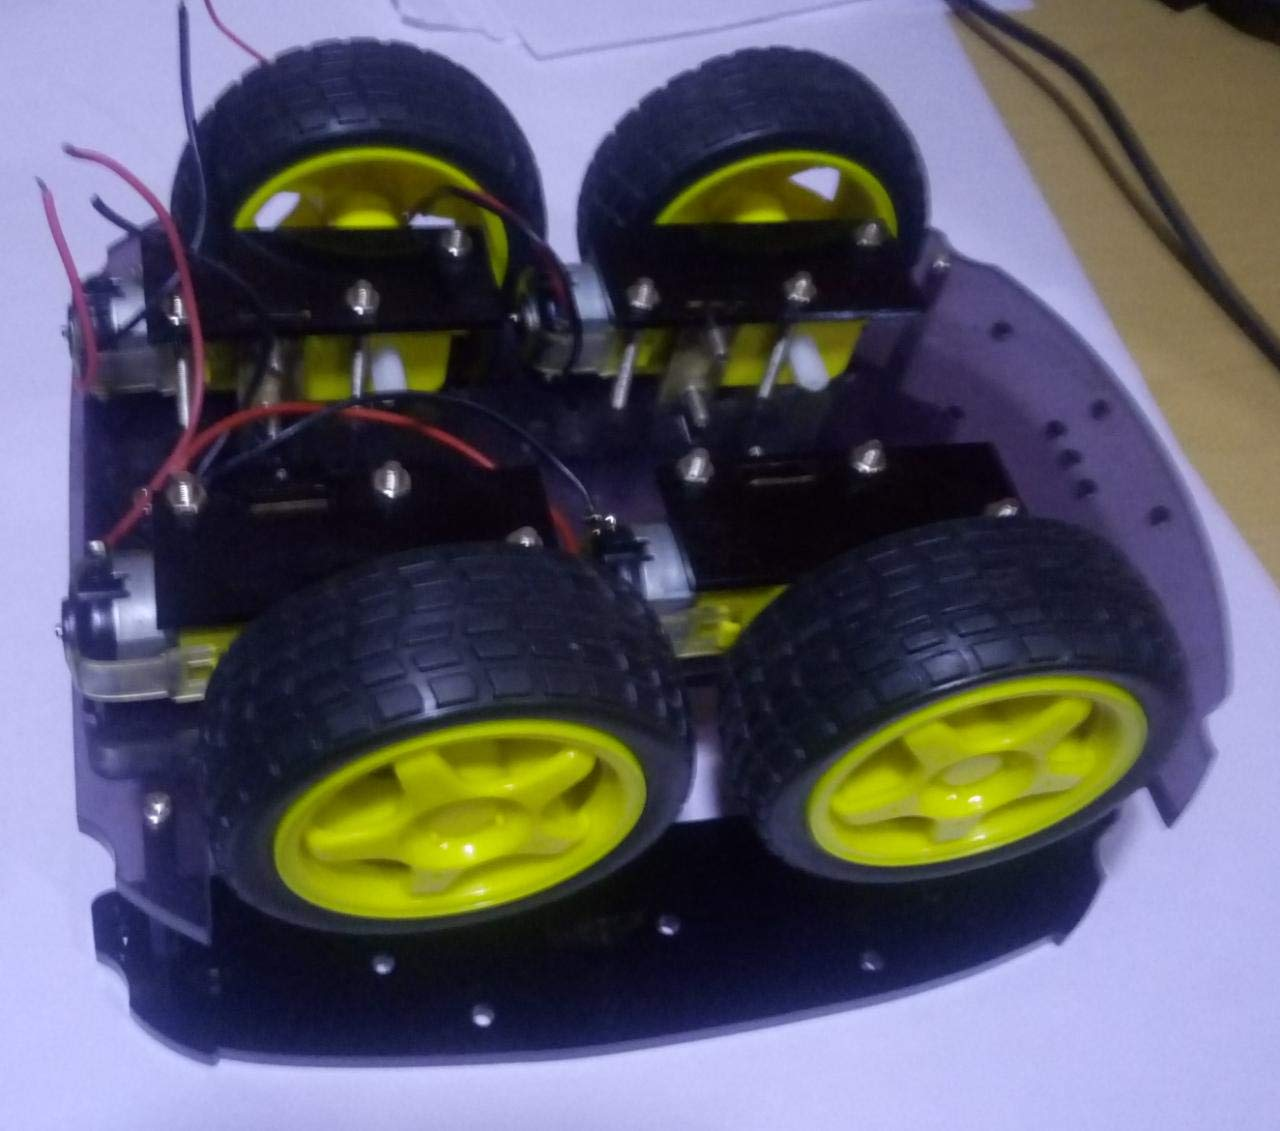 Buy Smart Robot Car Chassis Kit, 4 Wheels, 2 Layers with